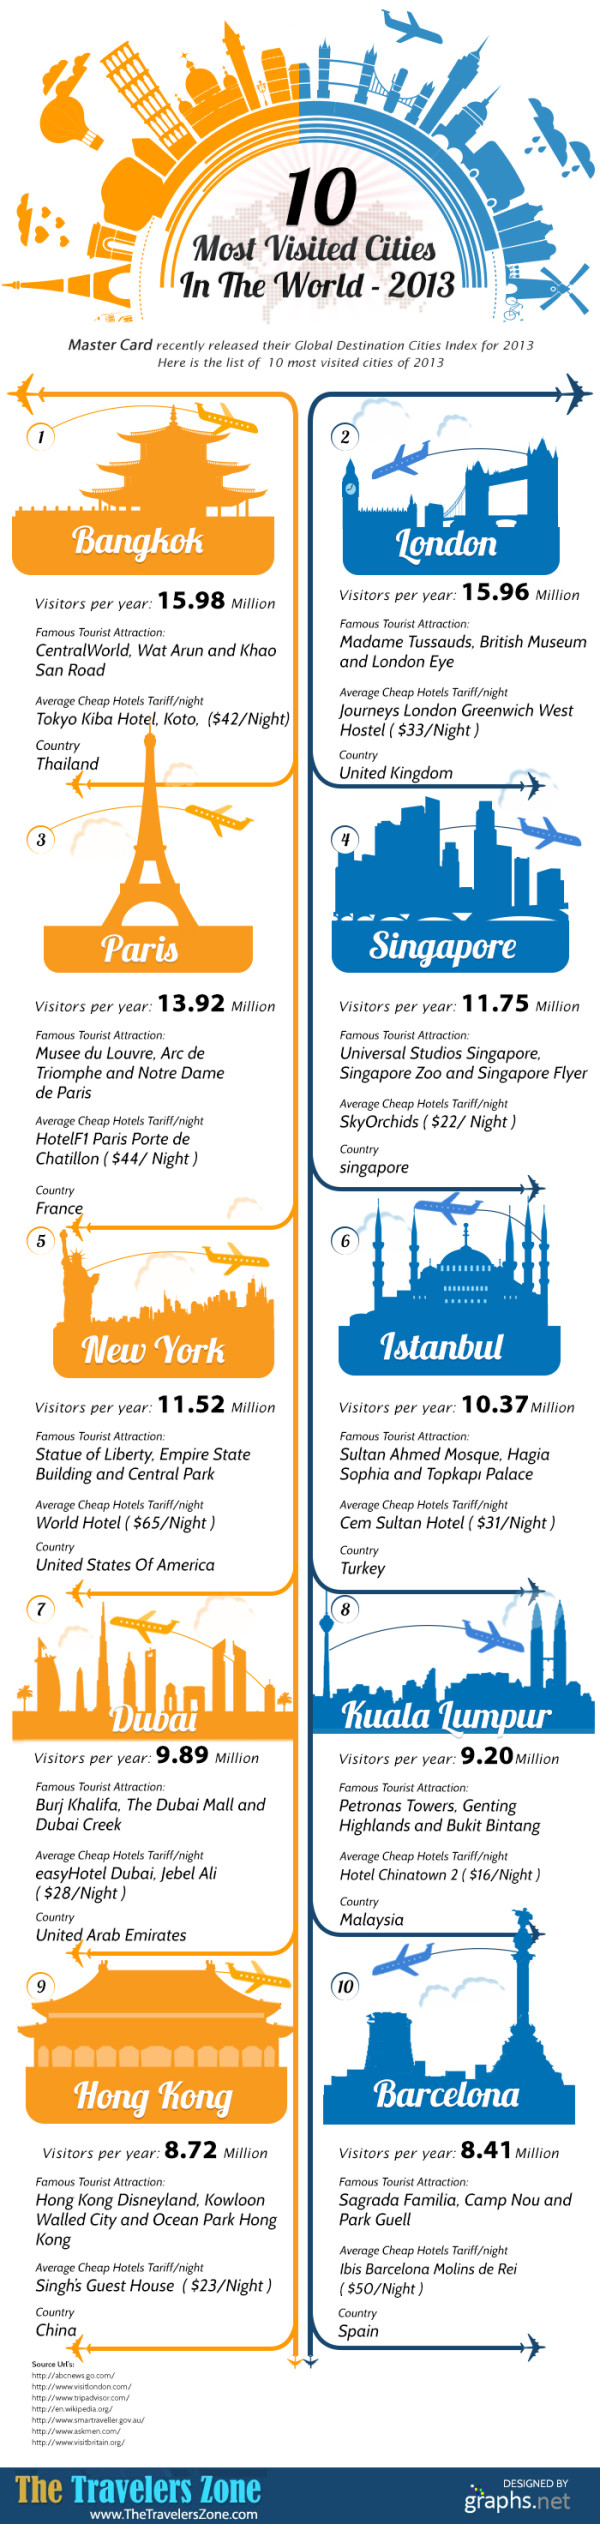 10-most-visited-cities-in-the-world-2013